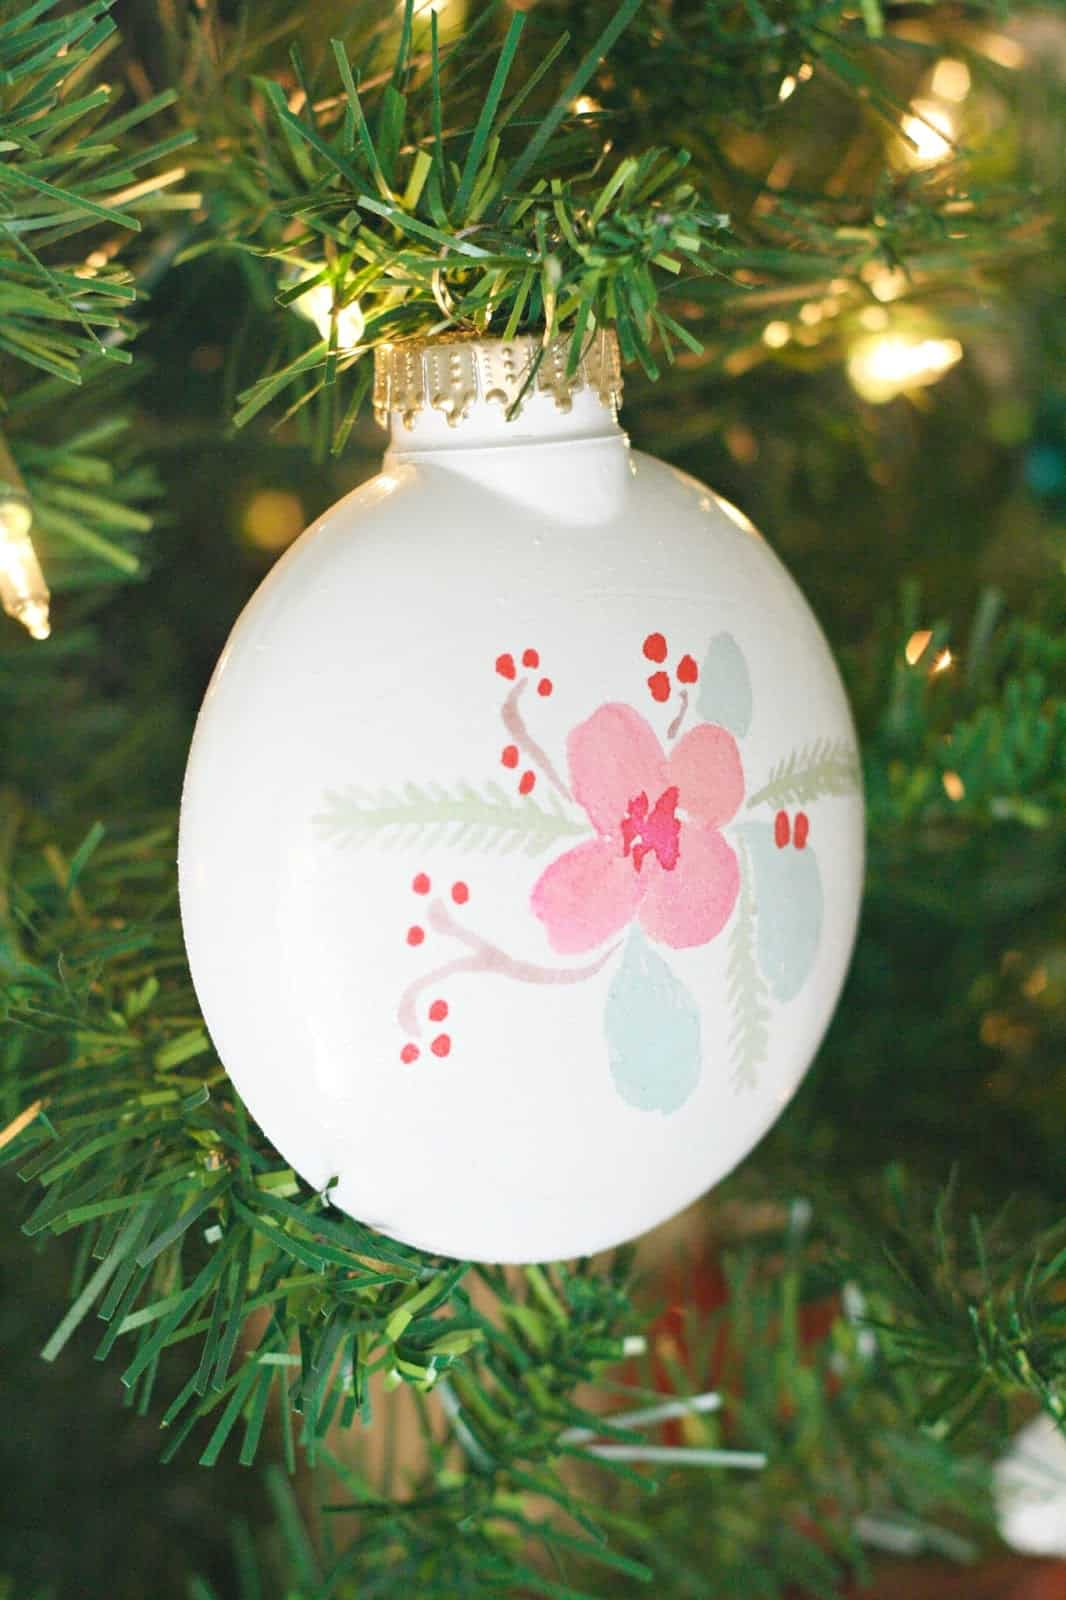 These DIY Christmas ornaments are made using temporary tattoos! They are one of my favorite holiday projects ever and the possibilities are endless.